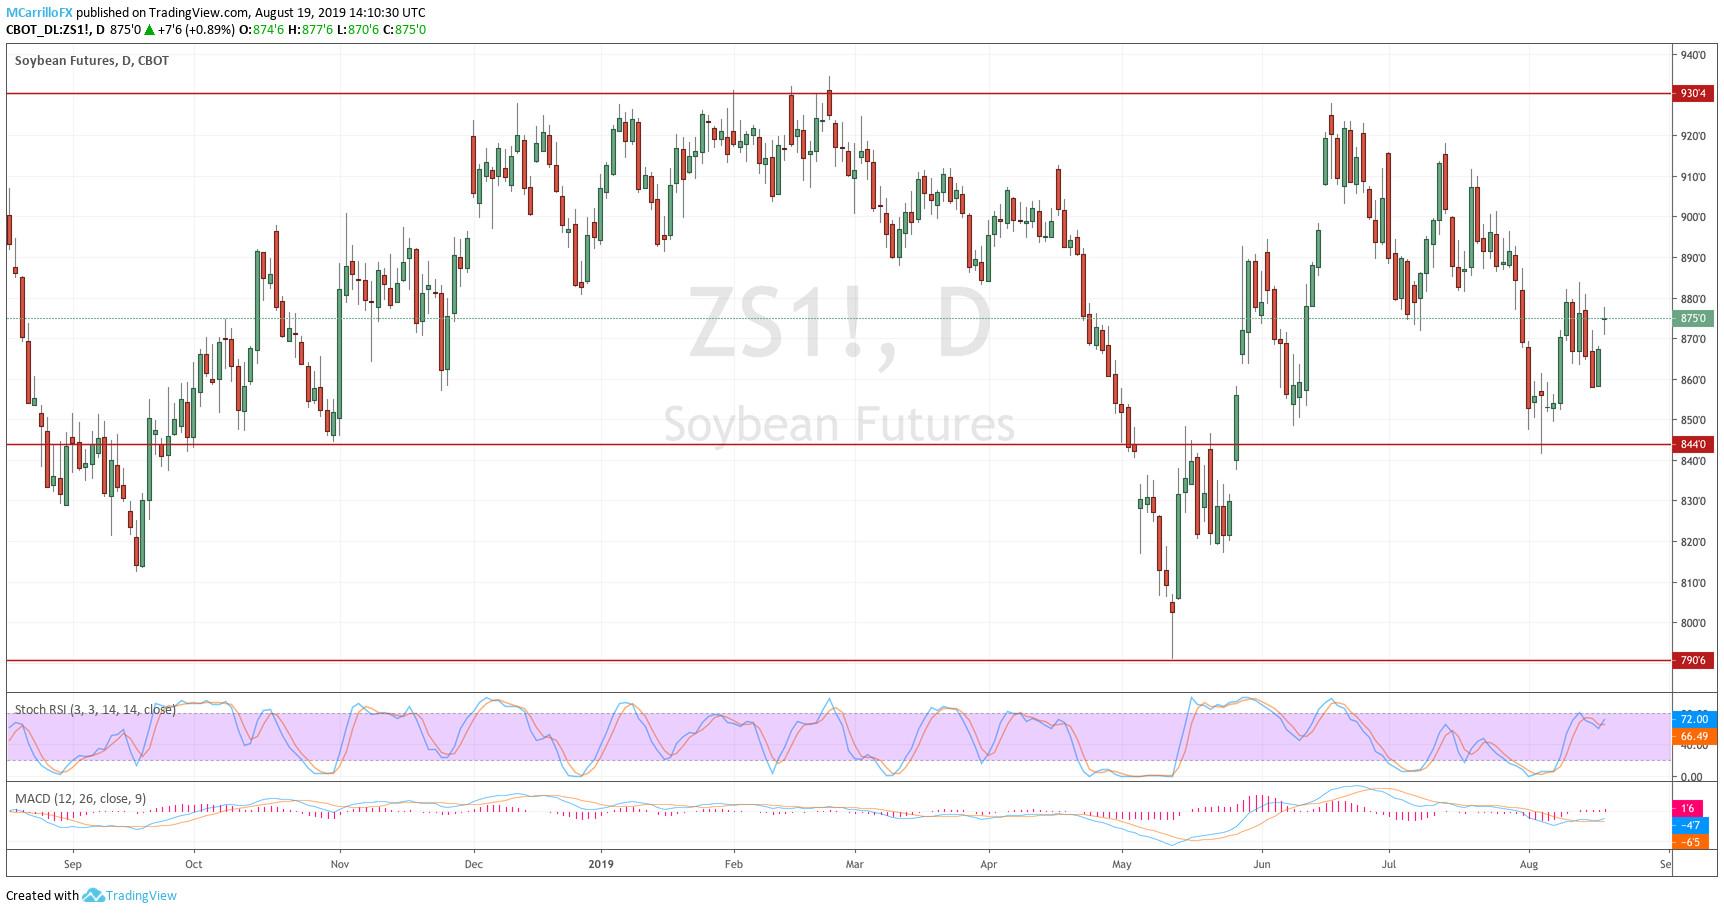 Daily chart for Soybeans August 19